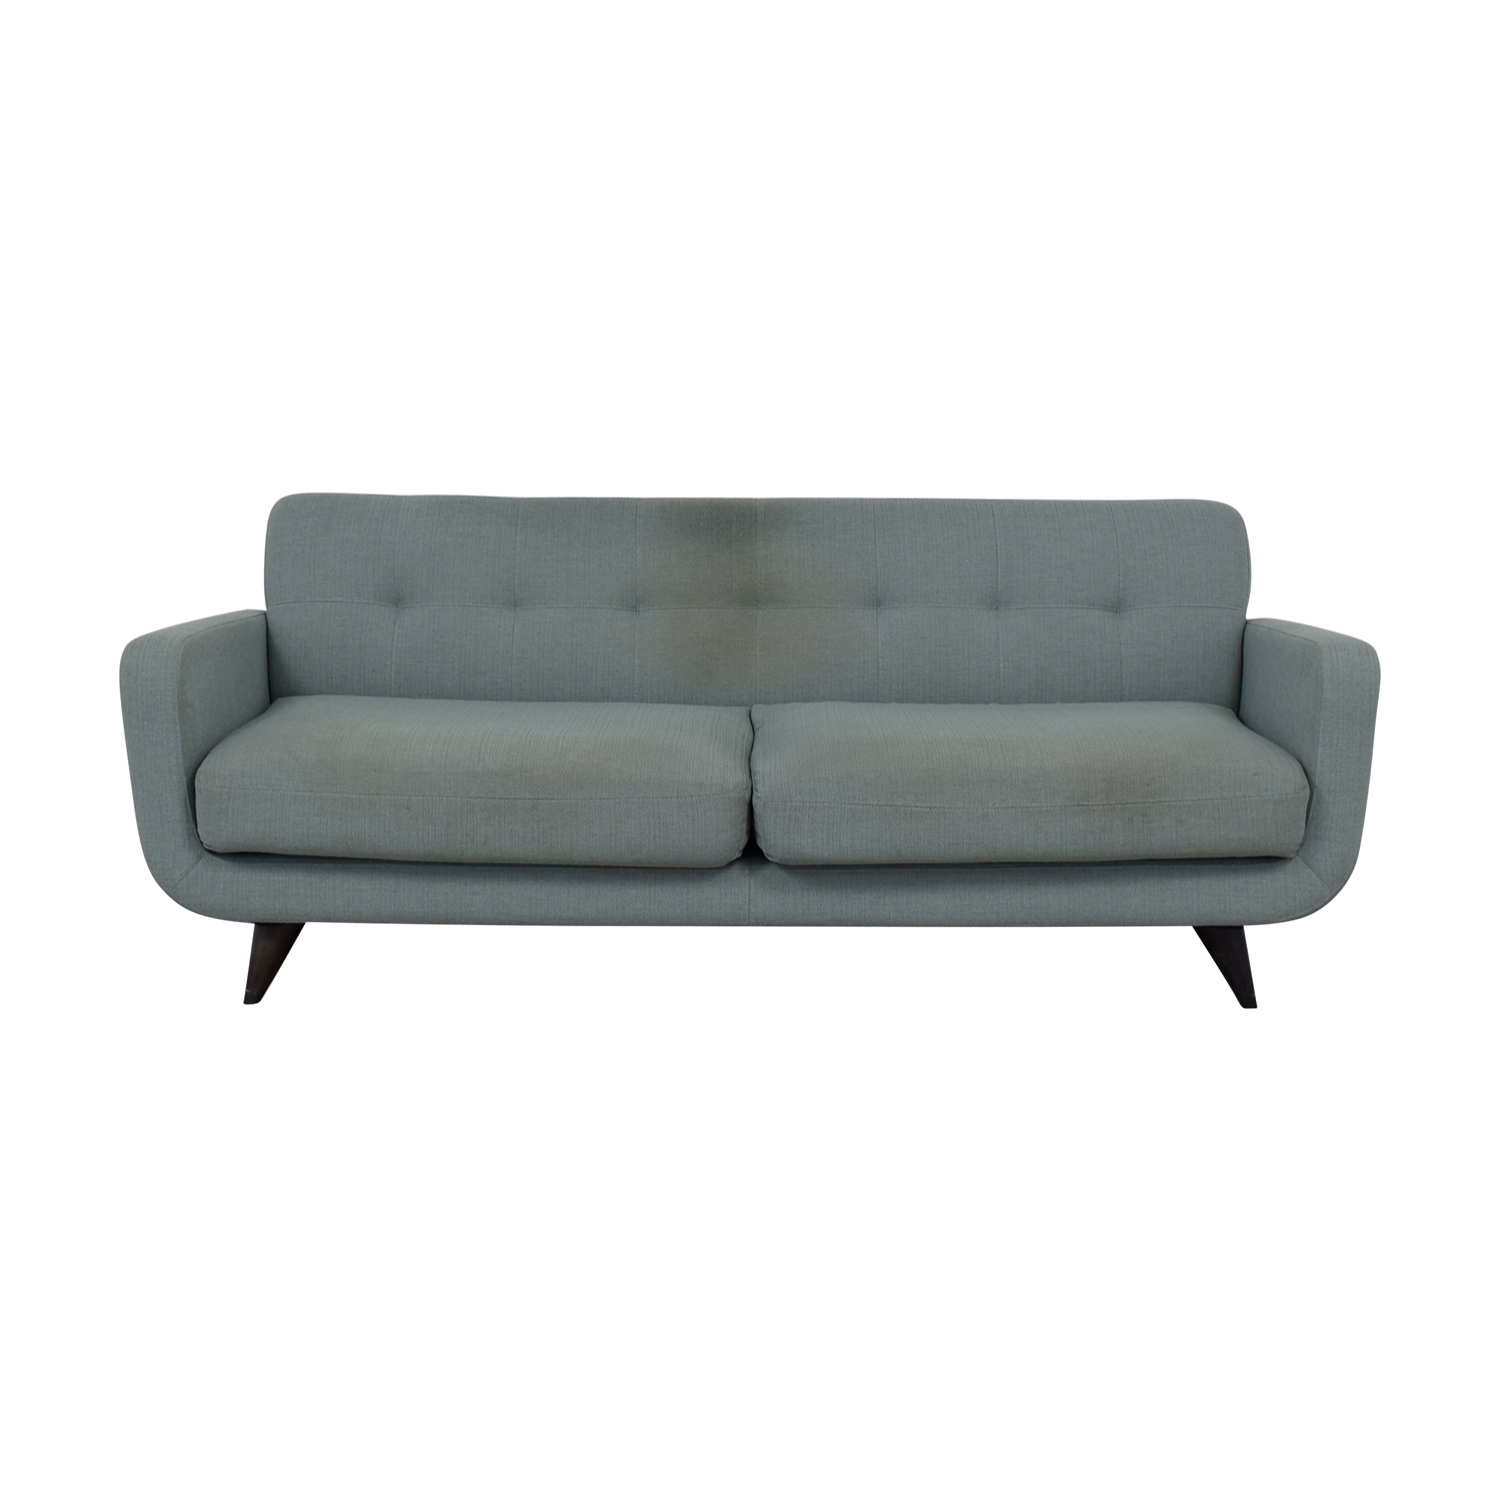 Room & Board Room & Board Anson Grey Two-Cushion Sofa nj